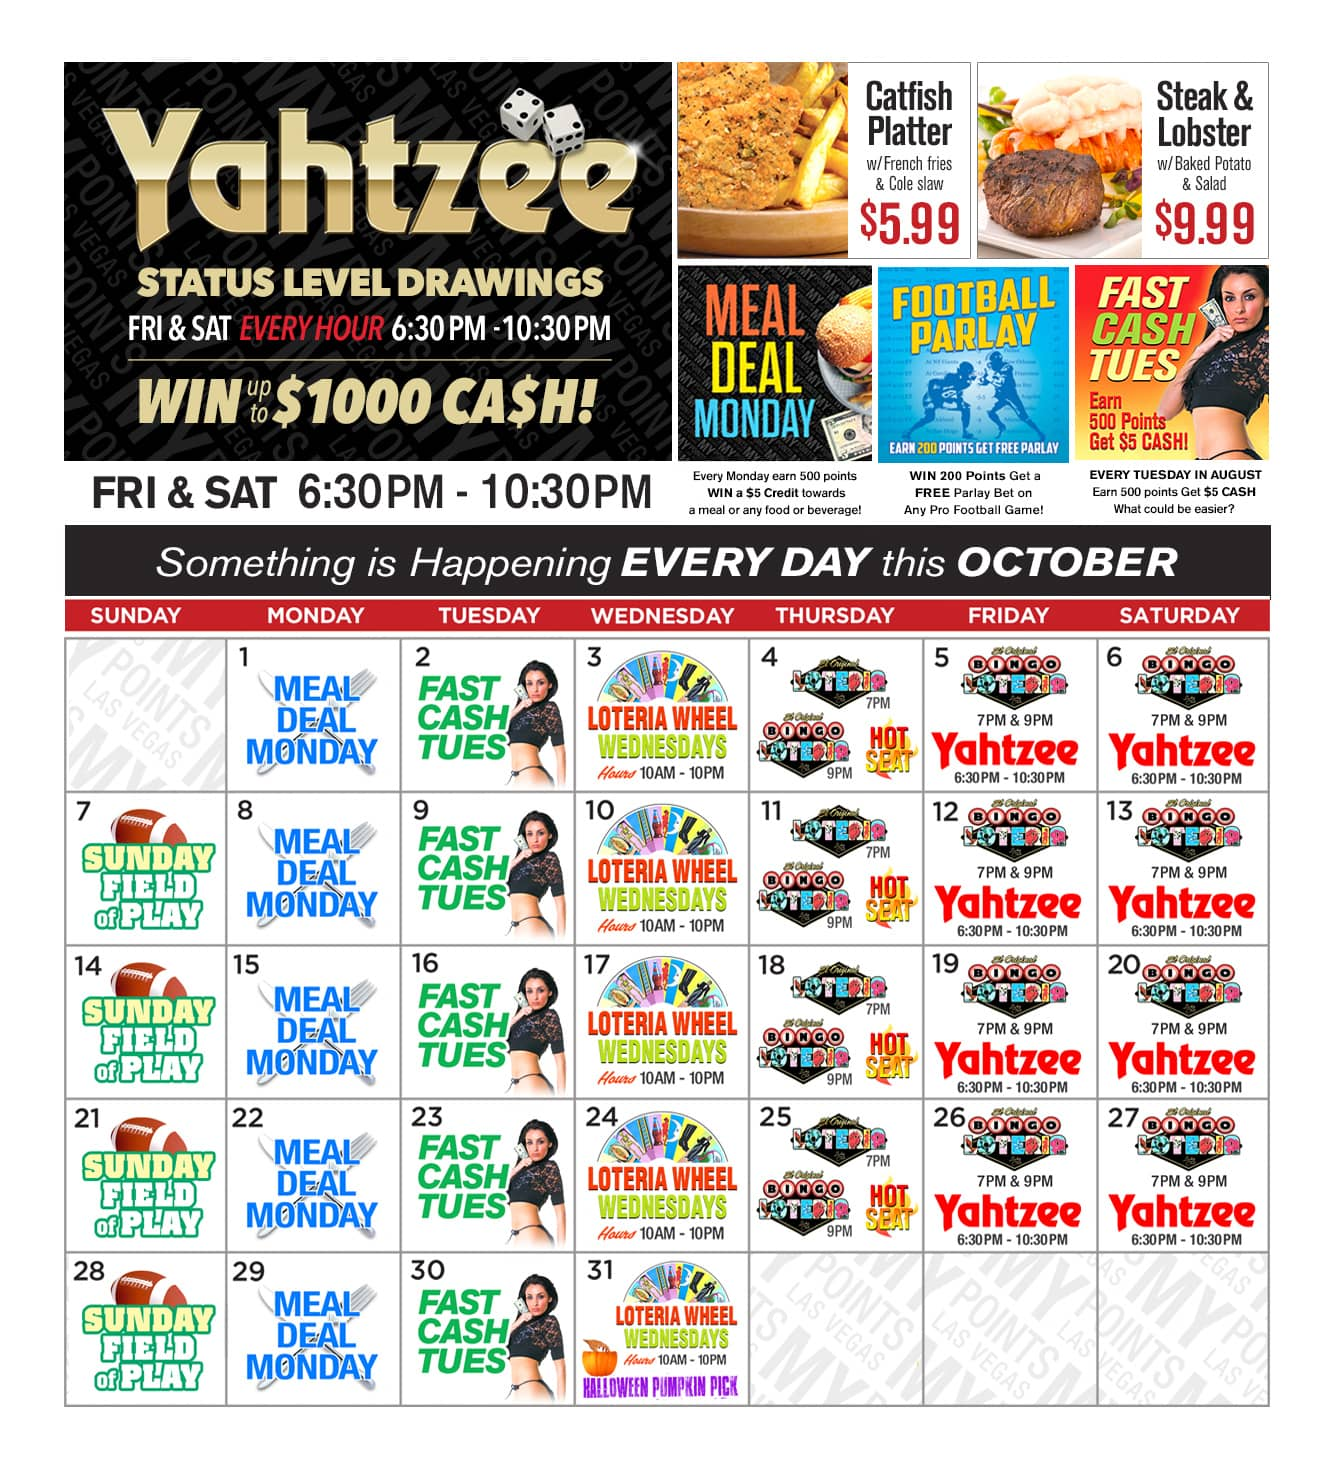 Lucky Club Upcoming Promotions - October 2018